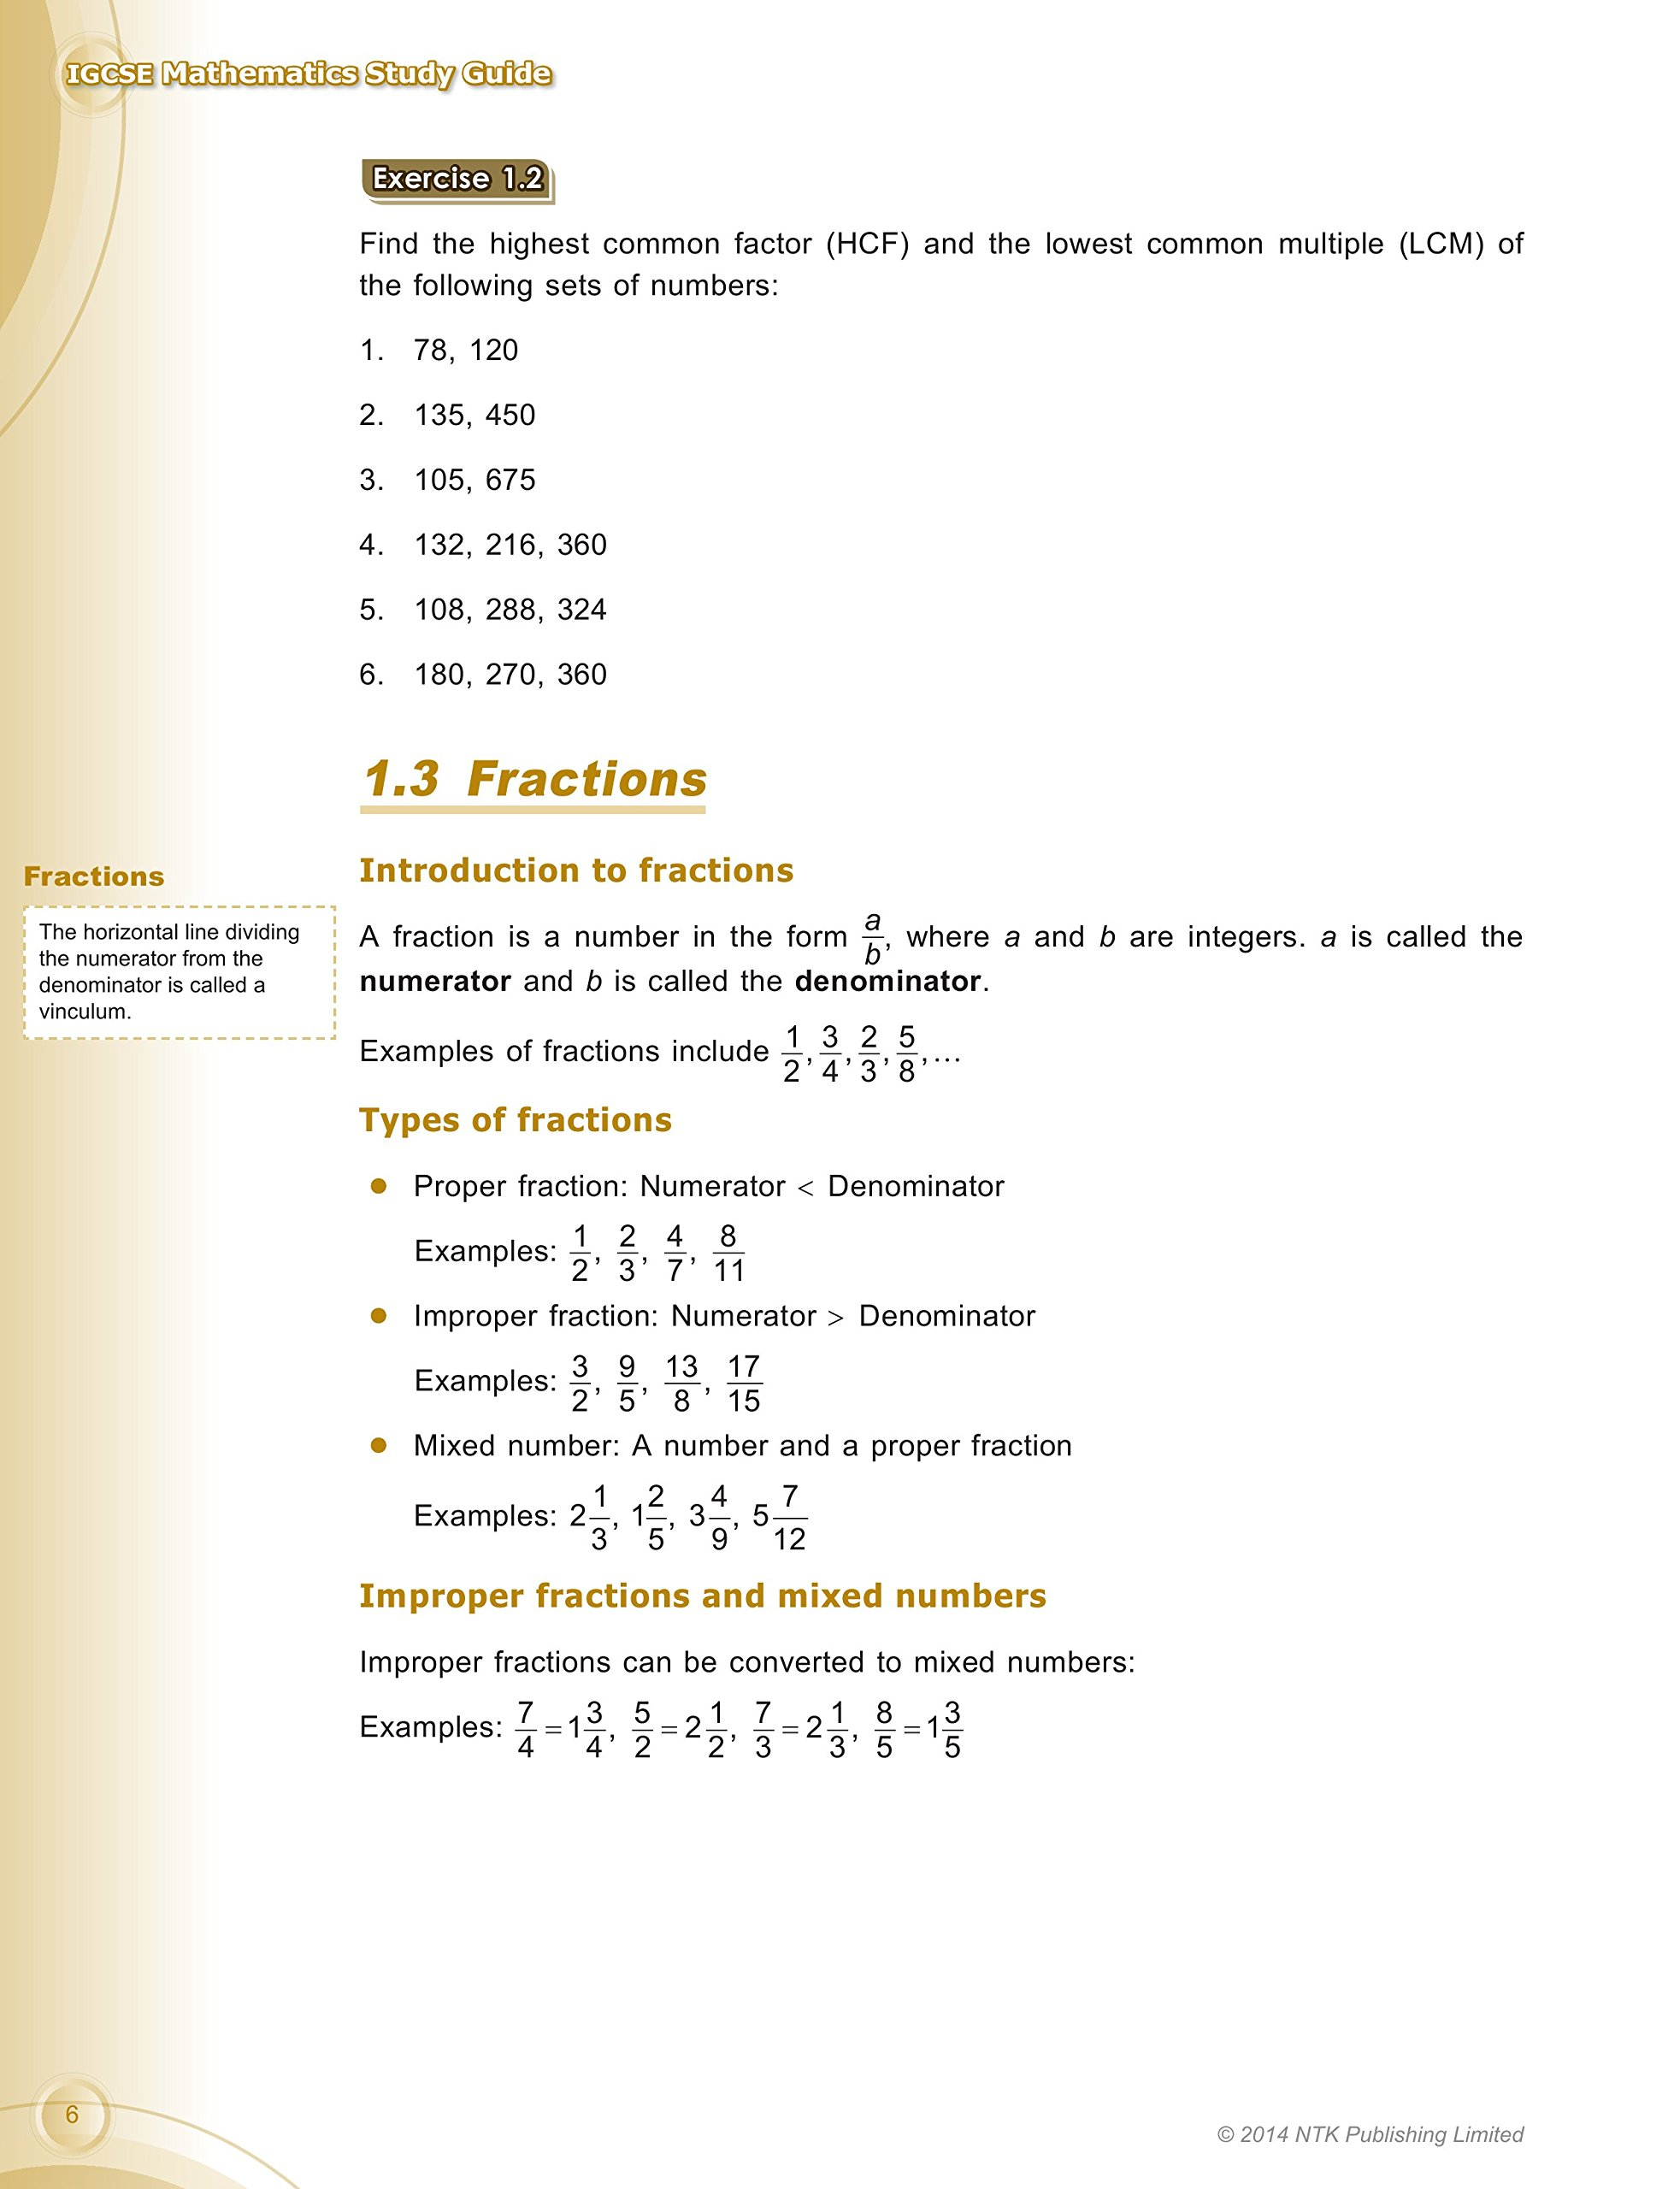 IGCSE Mathematics Study Guide (for Edexcel & CIE Syllabuses): NTK  Publishing Team: 9789881555526: Amazon.com: Books